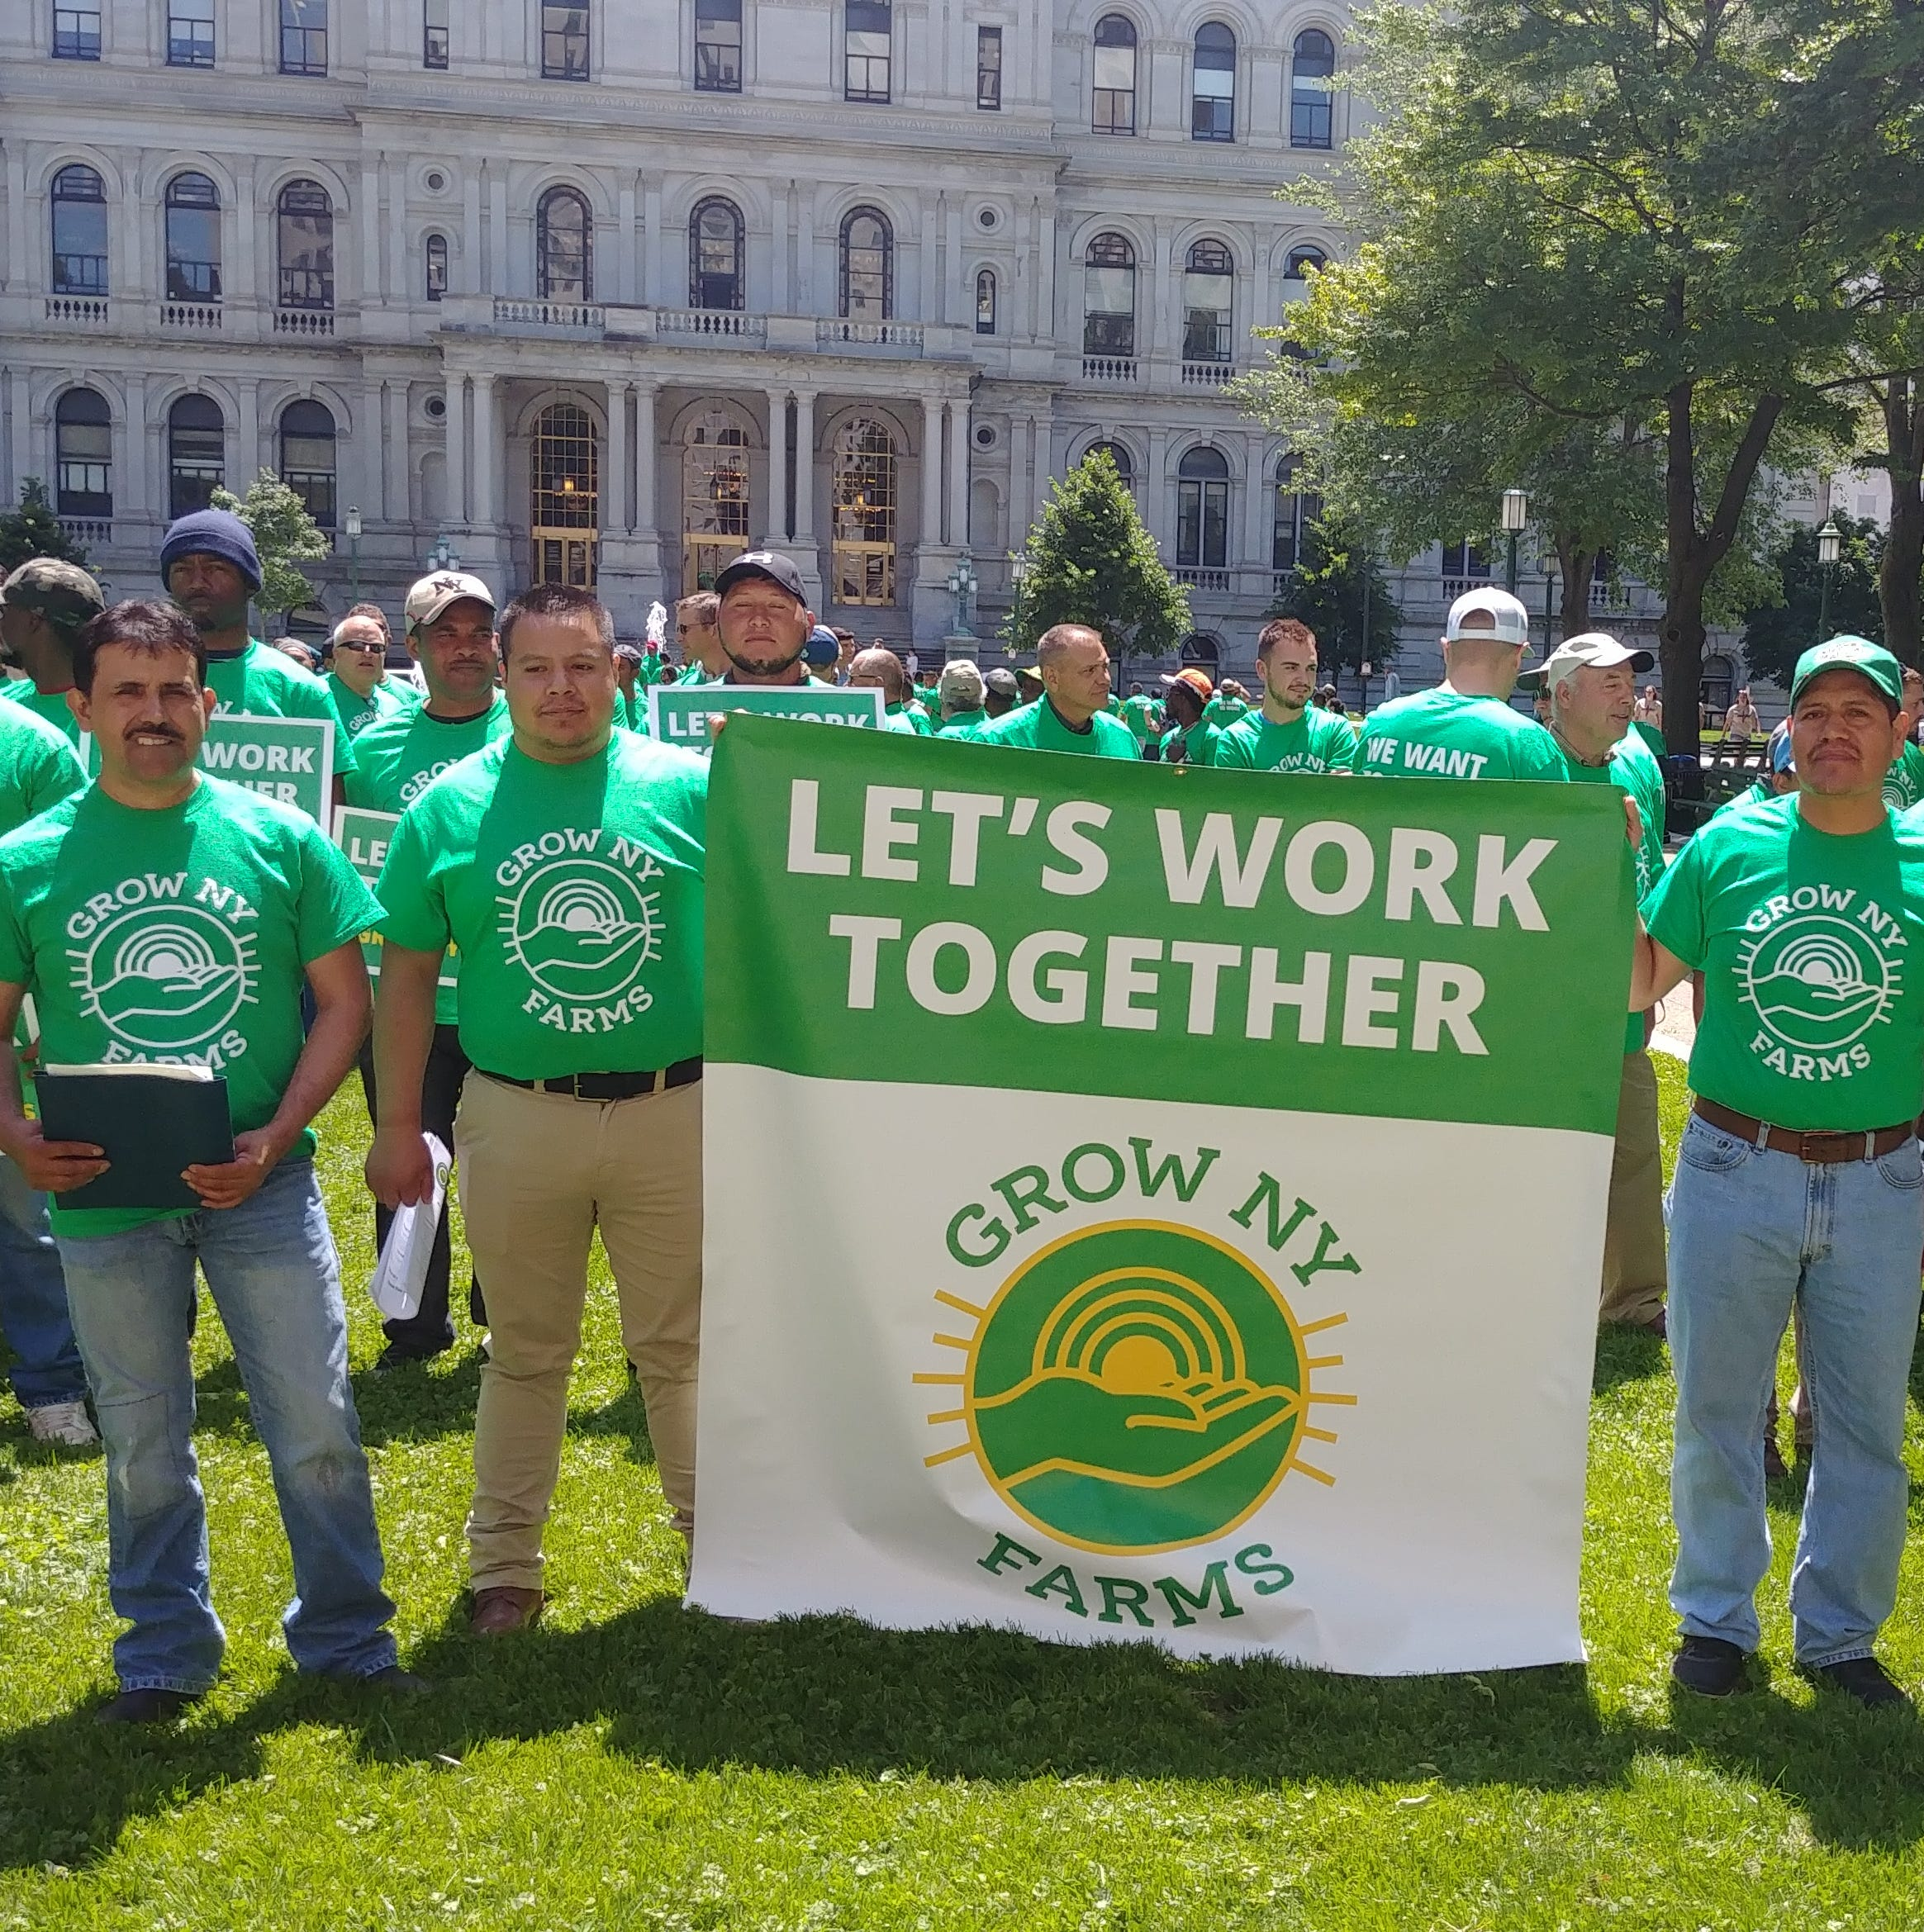 Farmers gathered in Albany on Wednesday to voice their concerns about a farm labor bill they say would negatively impact the state's agricultural industry.